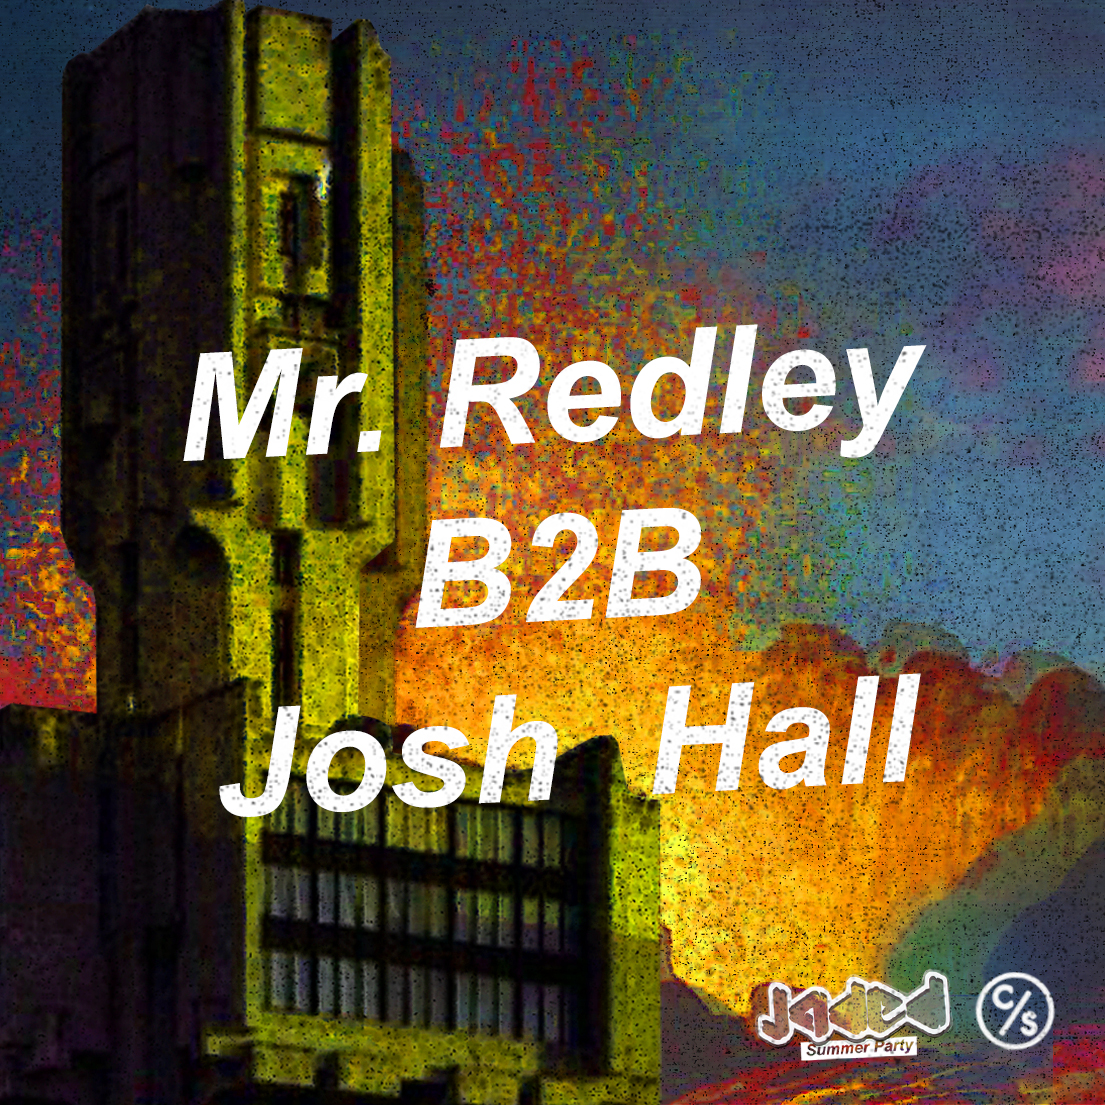 Choose Your Weapons: Mr. Redley B2B Josh Hall